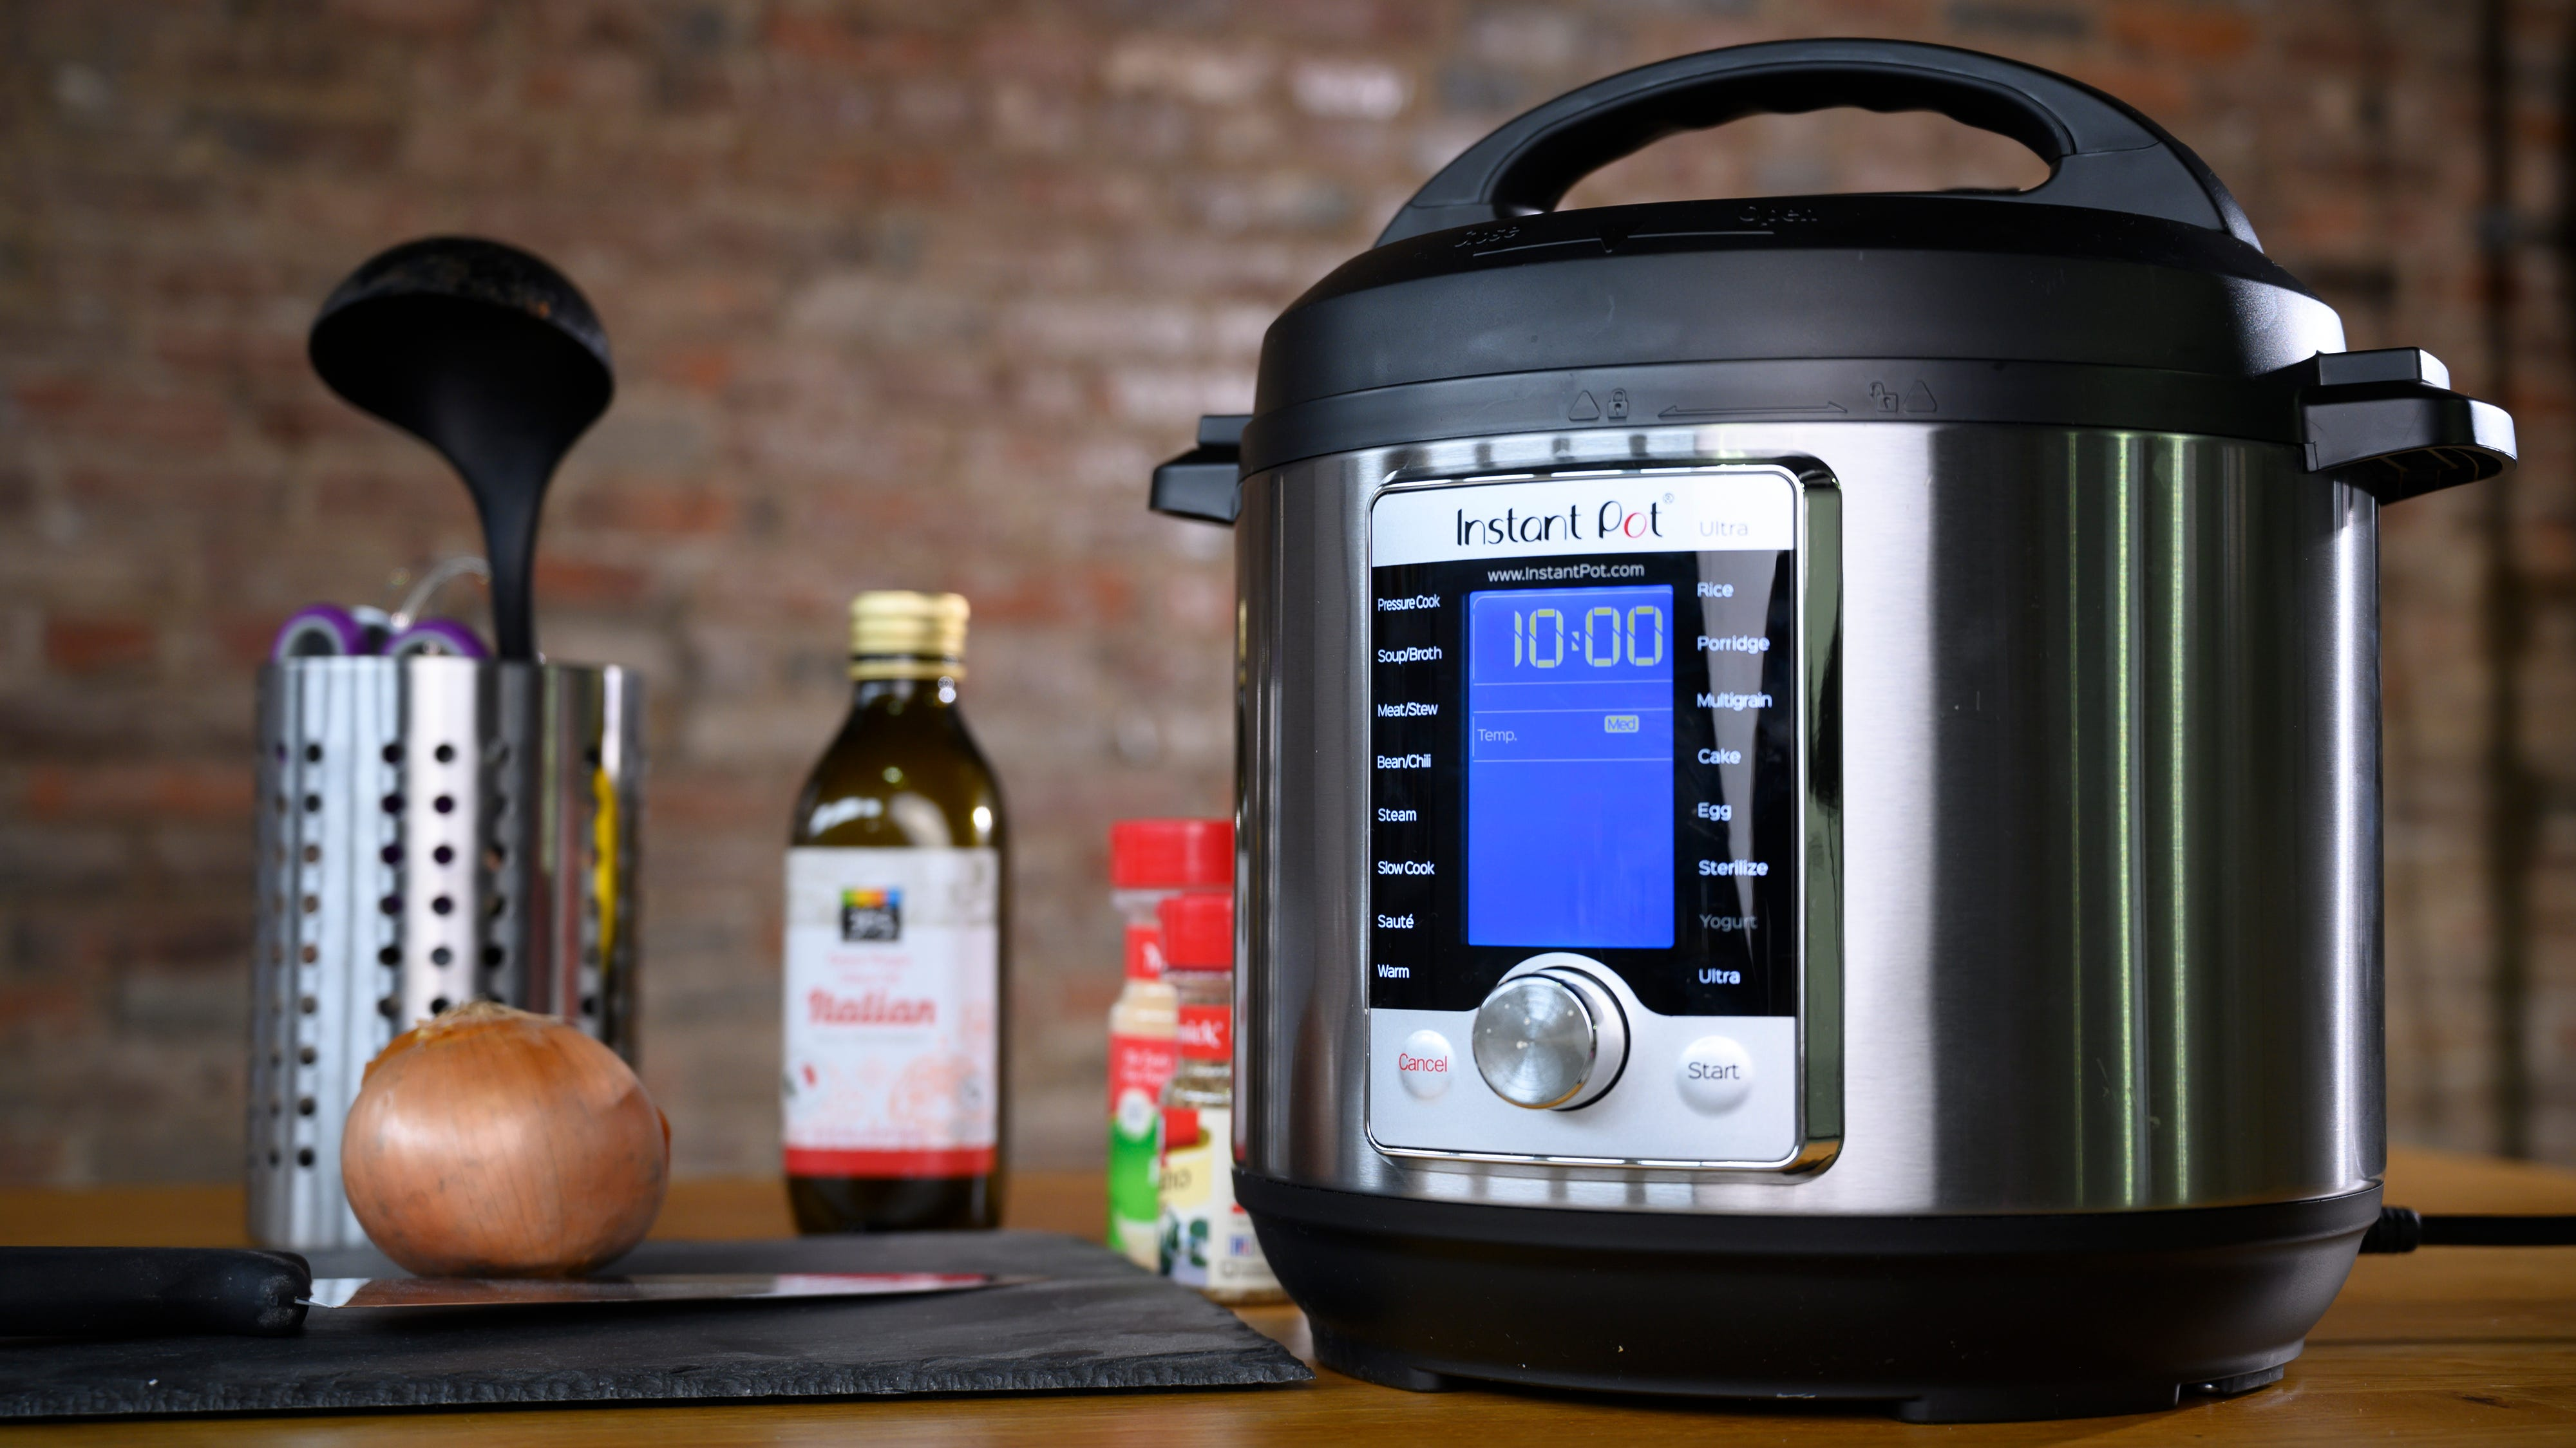 The Instant Pot Ultra is the most impressive model yet—and it's down to its lowest price